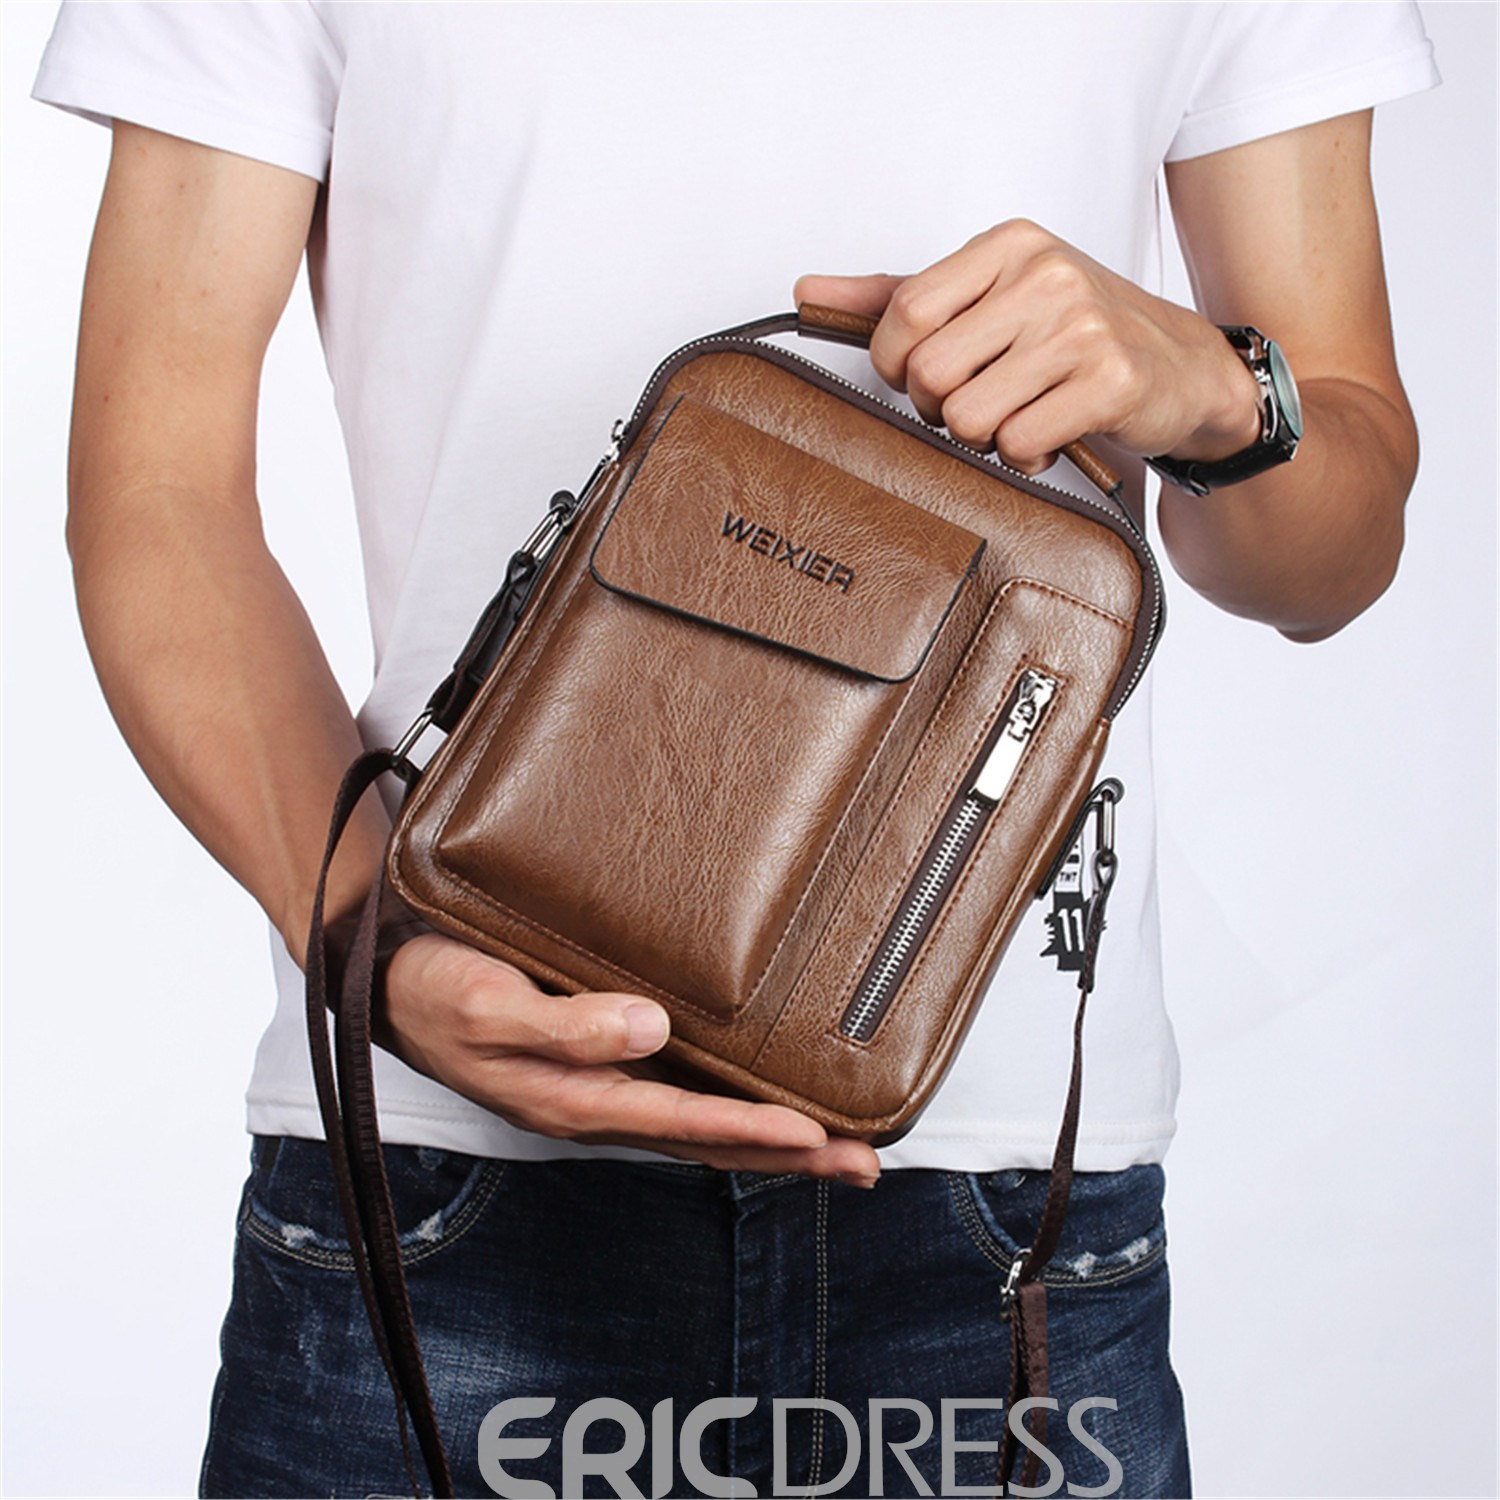 Ericdress Plain European PU Square Crossbody Bags